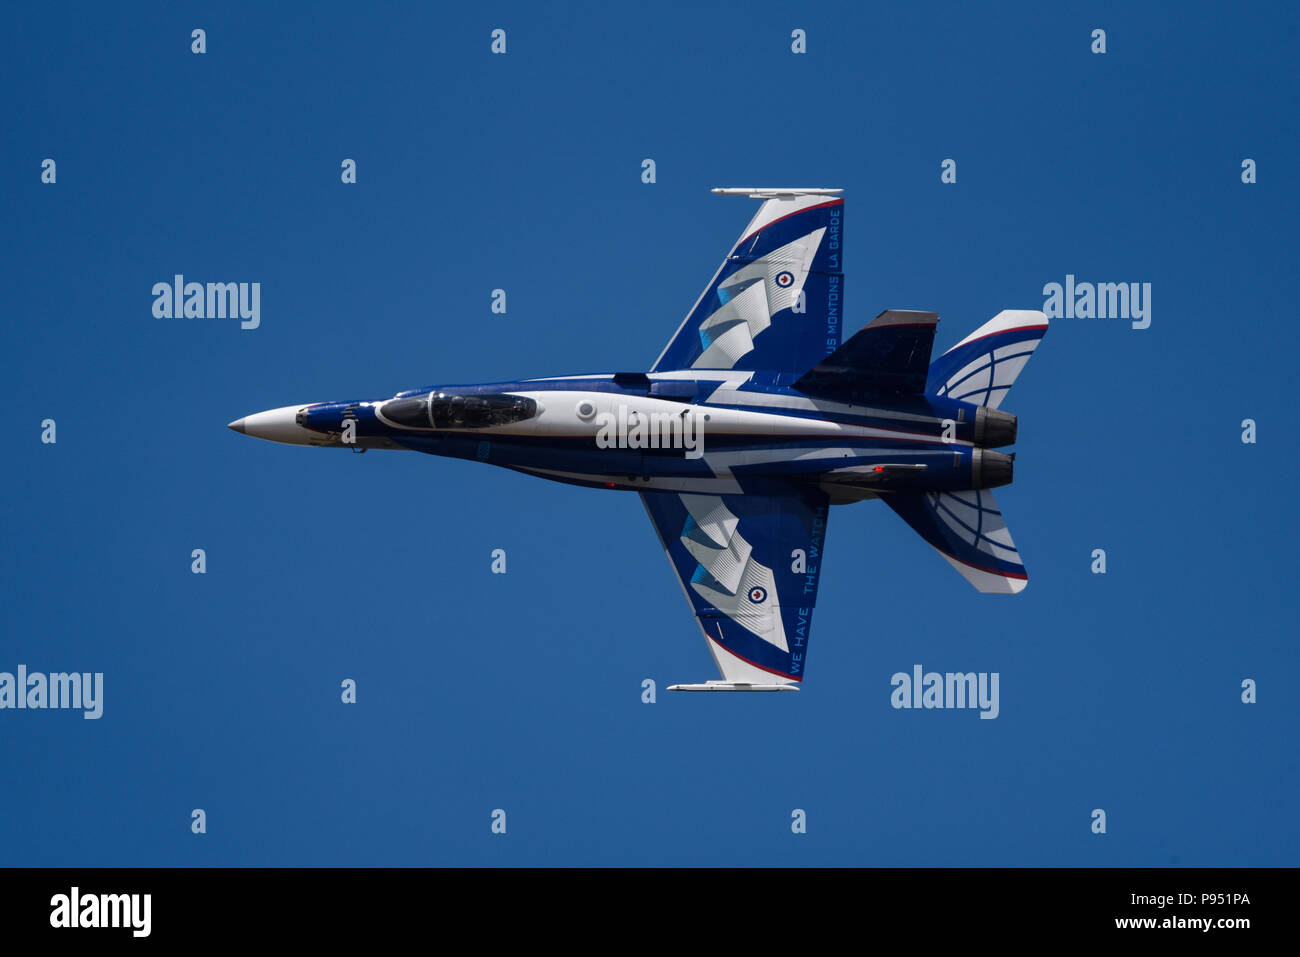 Specially painted Canadian F-18 Hornet at Royal International Air Tattoo, RIAT 2018, RAF Fairford. - Stock Image